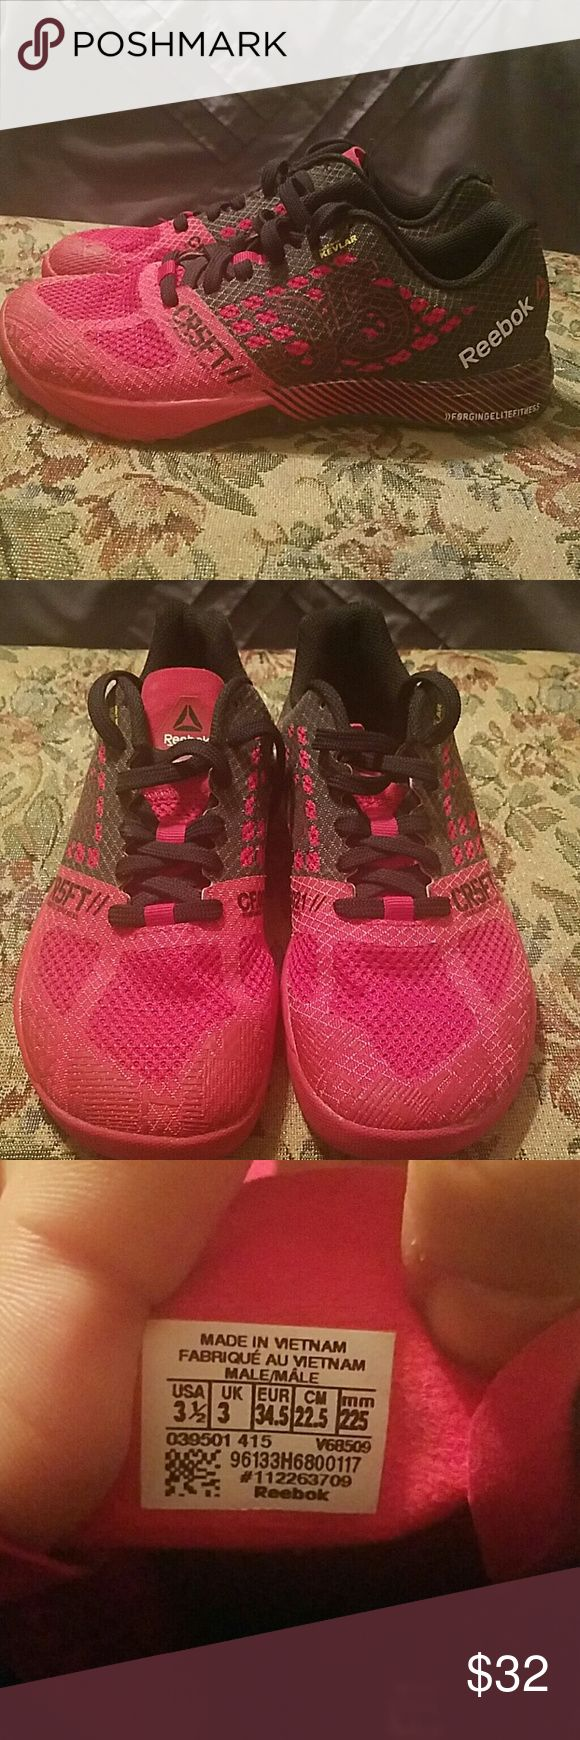 Children's CrossFit shoes Size 3 1/2 children's CrossFit shoes, worn a handful of times. EUC. Open to offers. Reebok Shoes Athletic Shoes